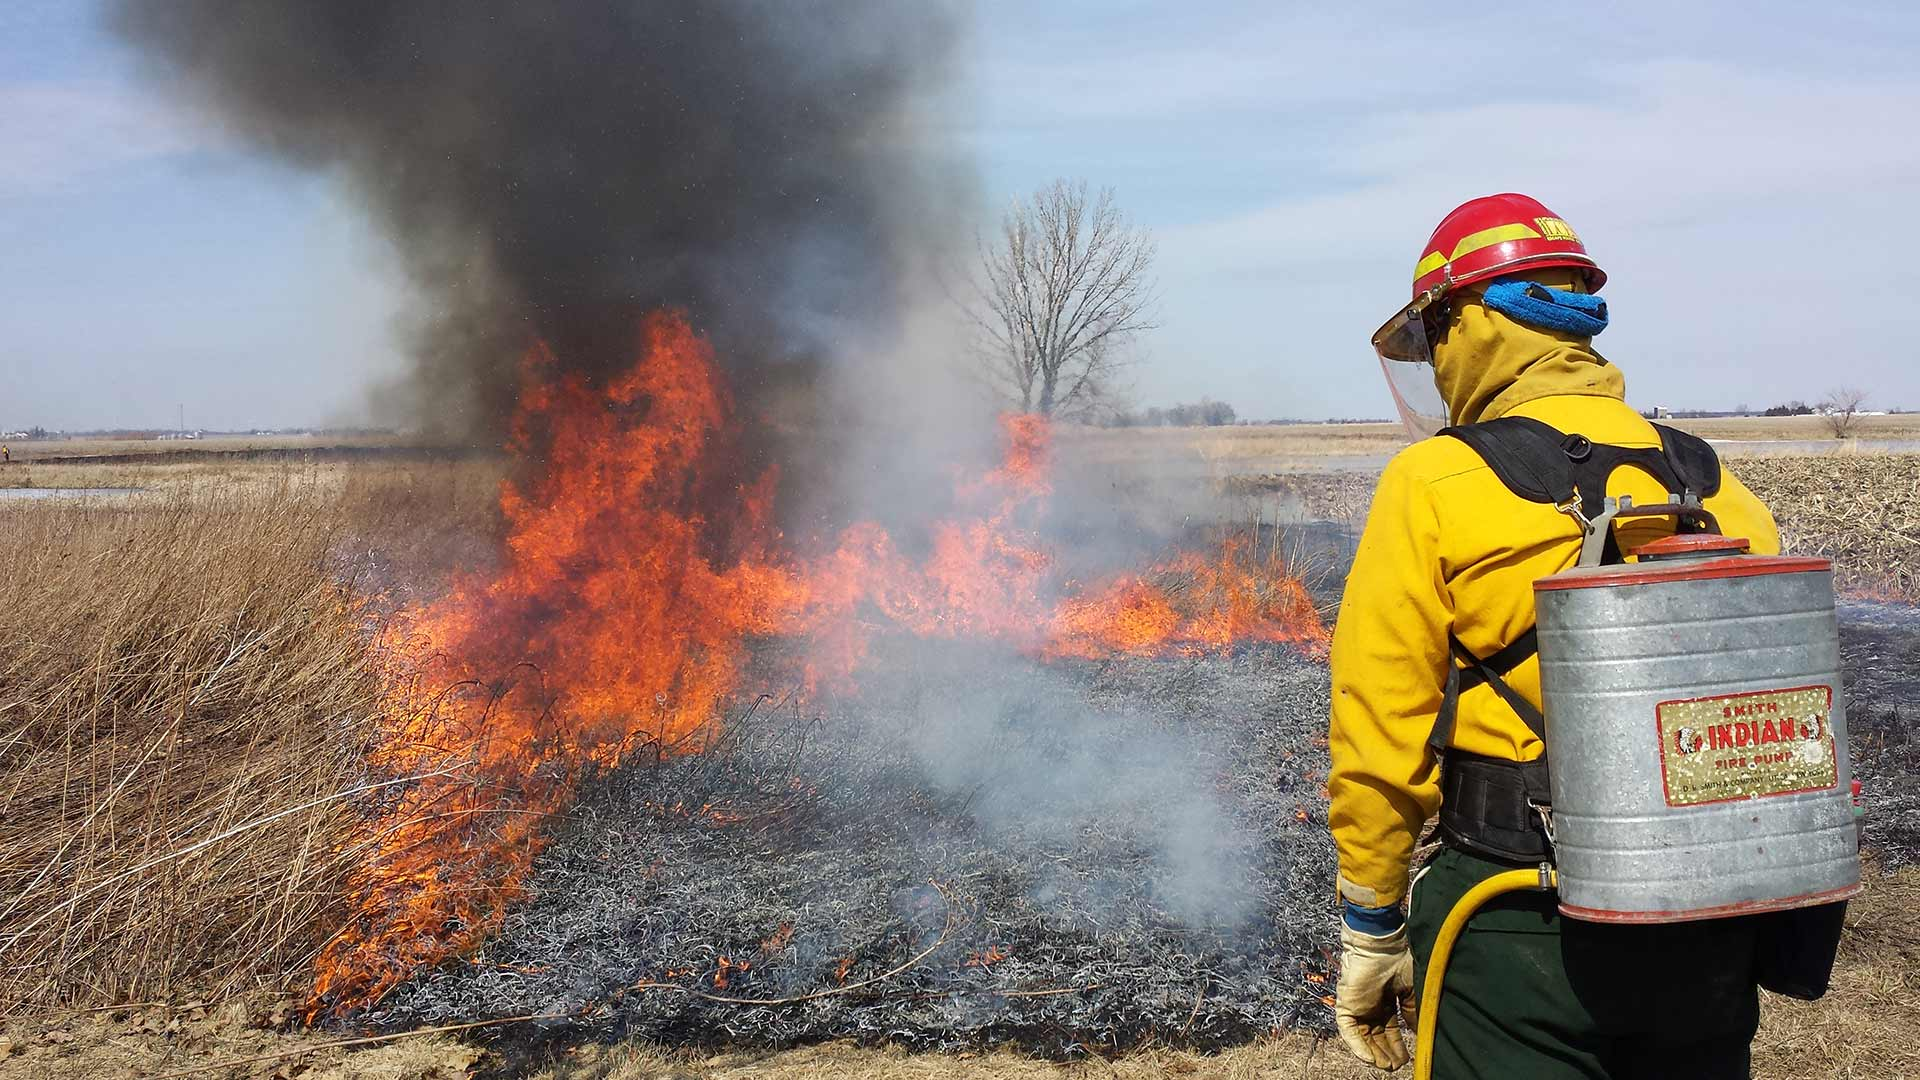 Prescribed fire burn for natural land management in Barrington, IL.